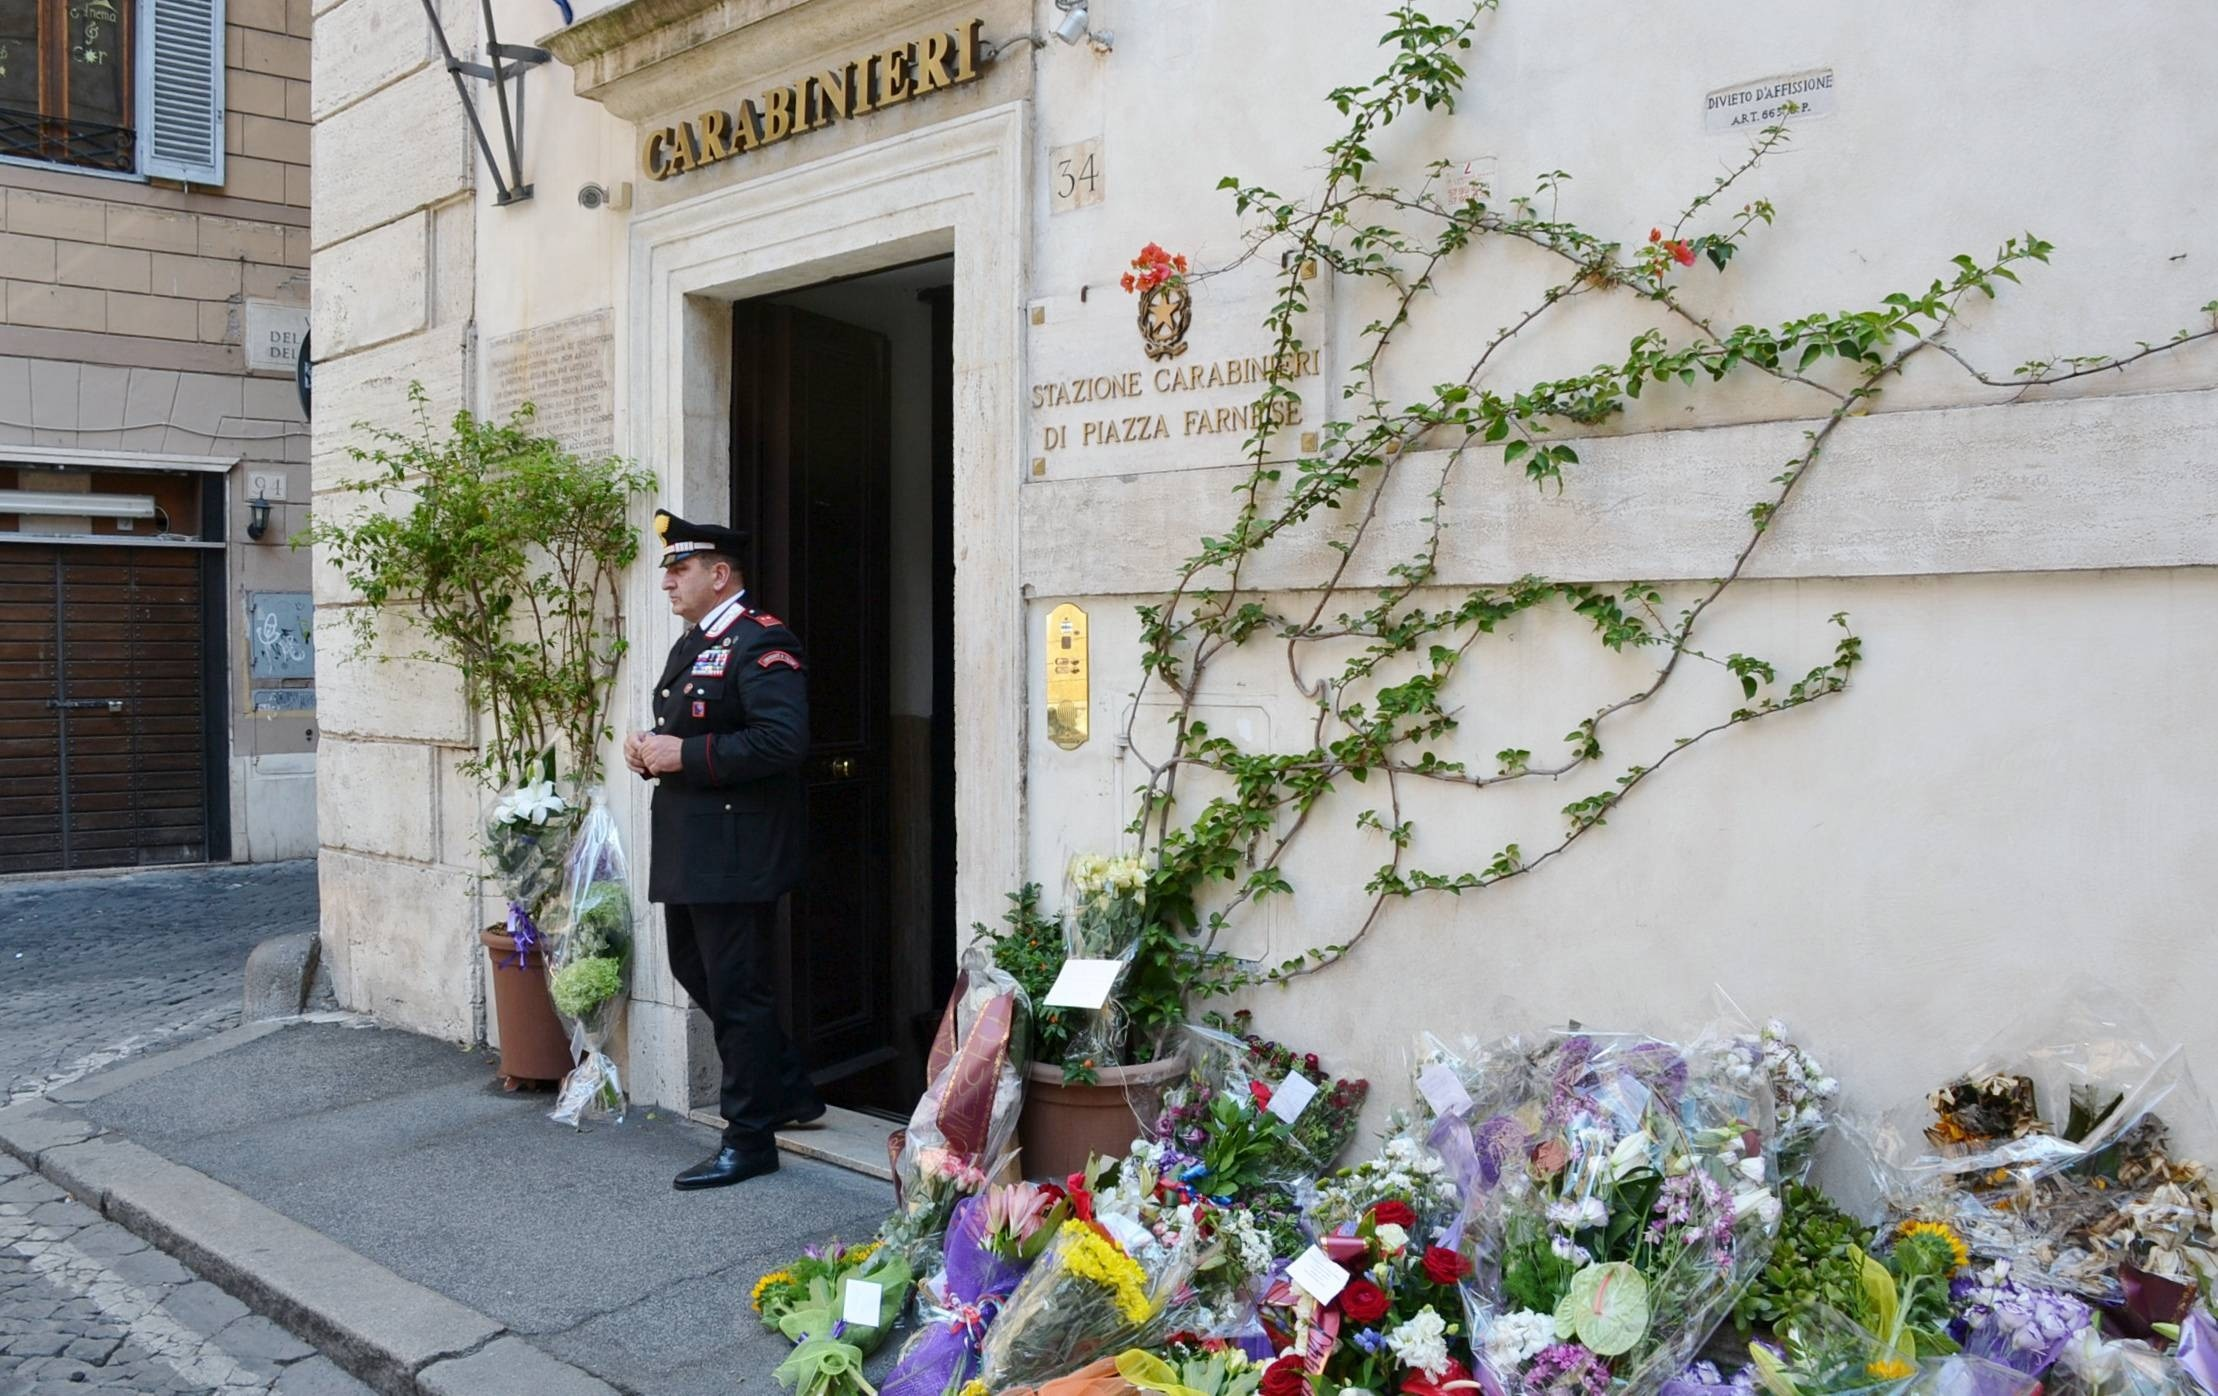 Flowers are layed out in front of the Carabinieri station in Piazza Farnese in tribute to policeman Mario Cerciello Rega who was murdered whilst trying to make an arrest in the centre of Rome..